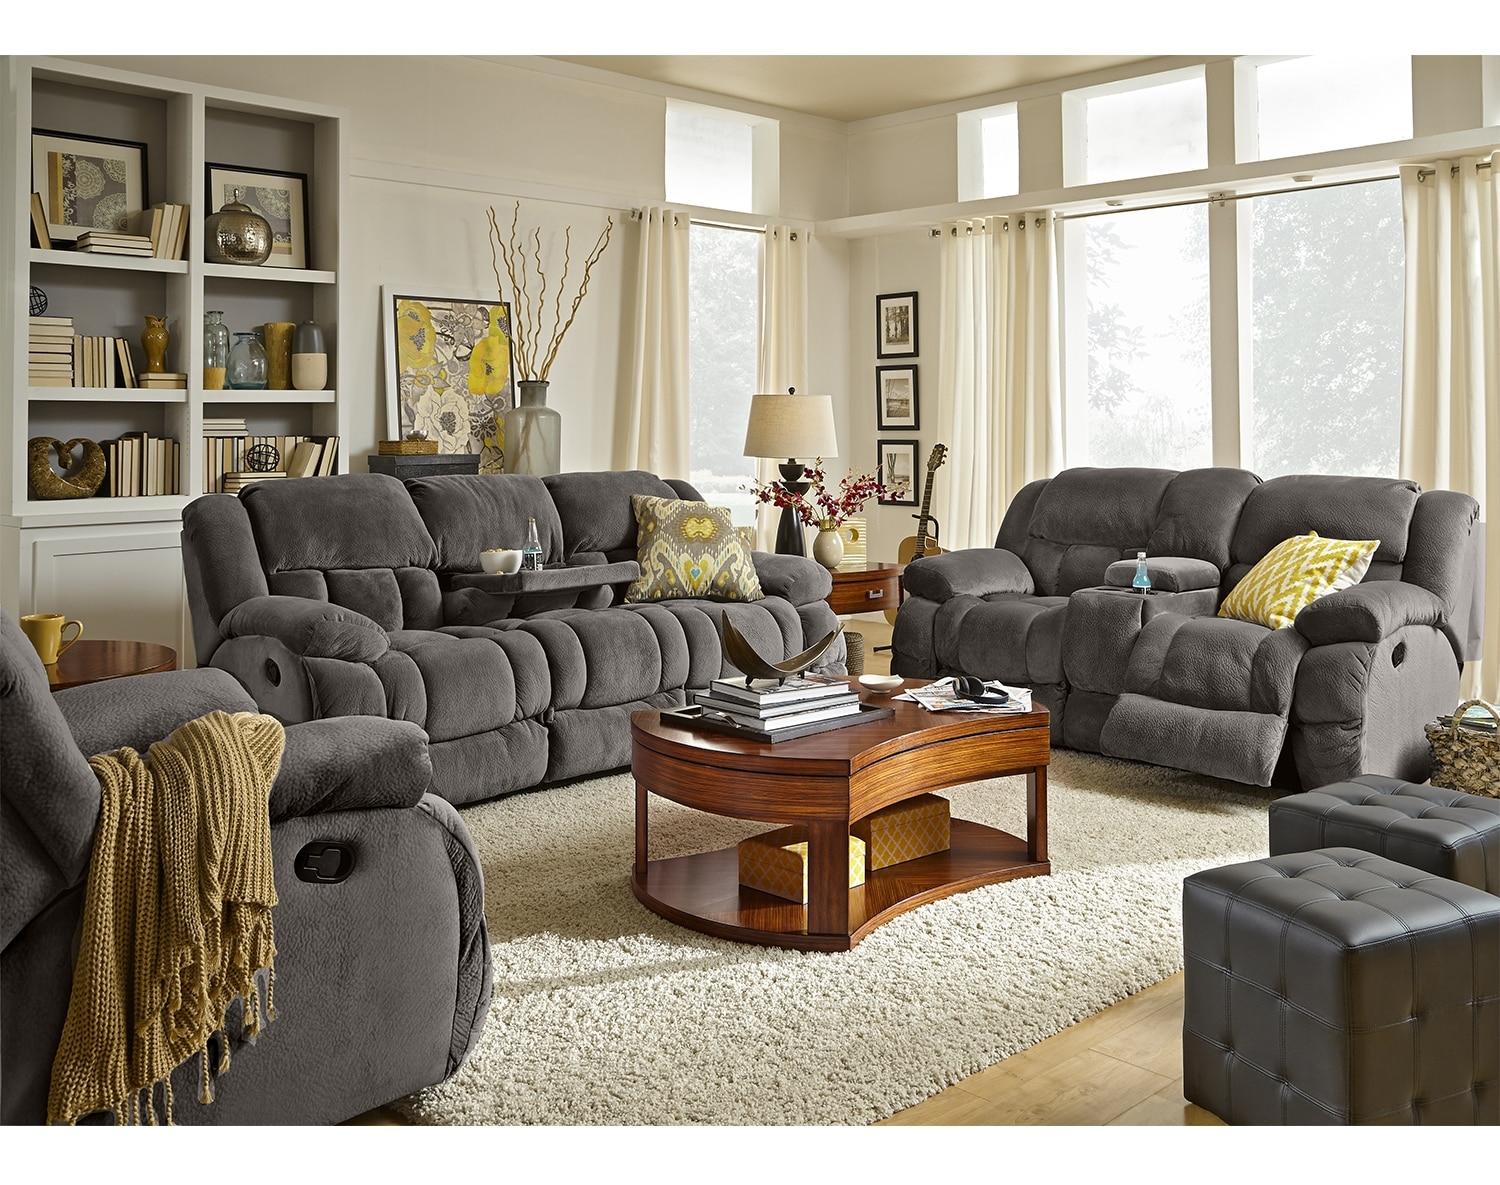 Value City Living Room Furniture The Park City Collection Gray Value City Furniture